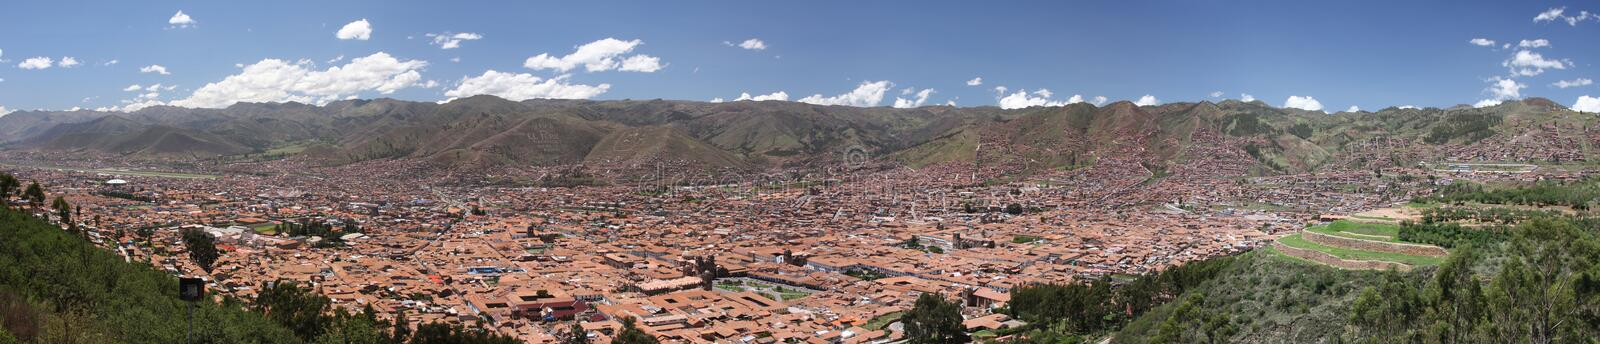 Download Cusco ( Cuzco ) City Panorama Stock Image - Image: 12527271